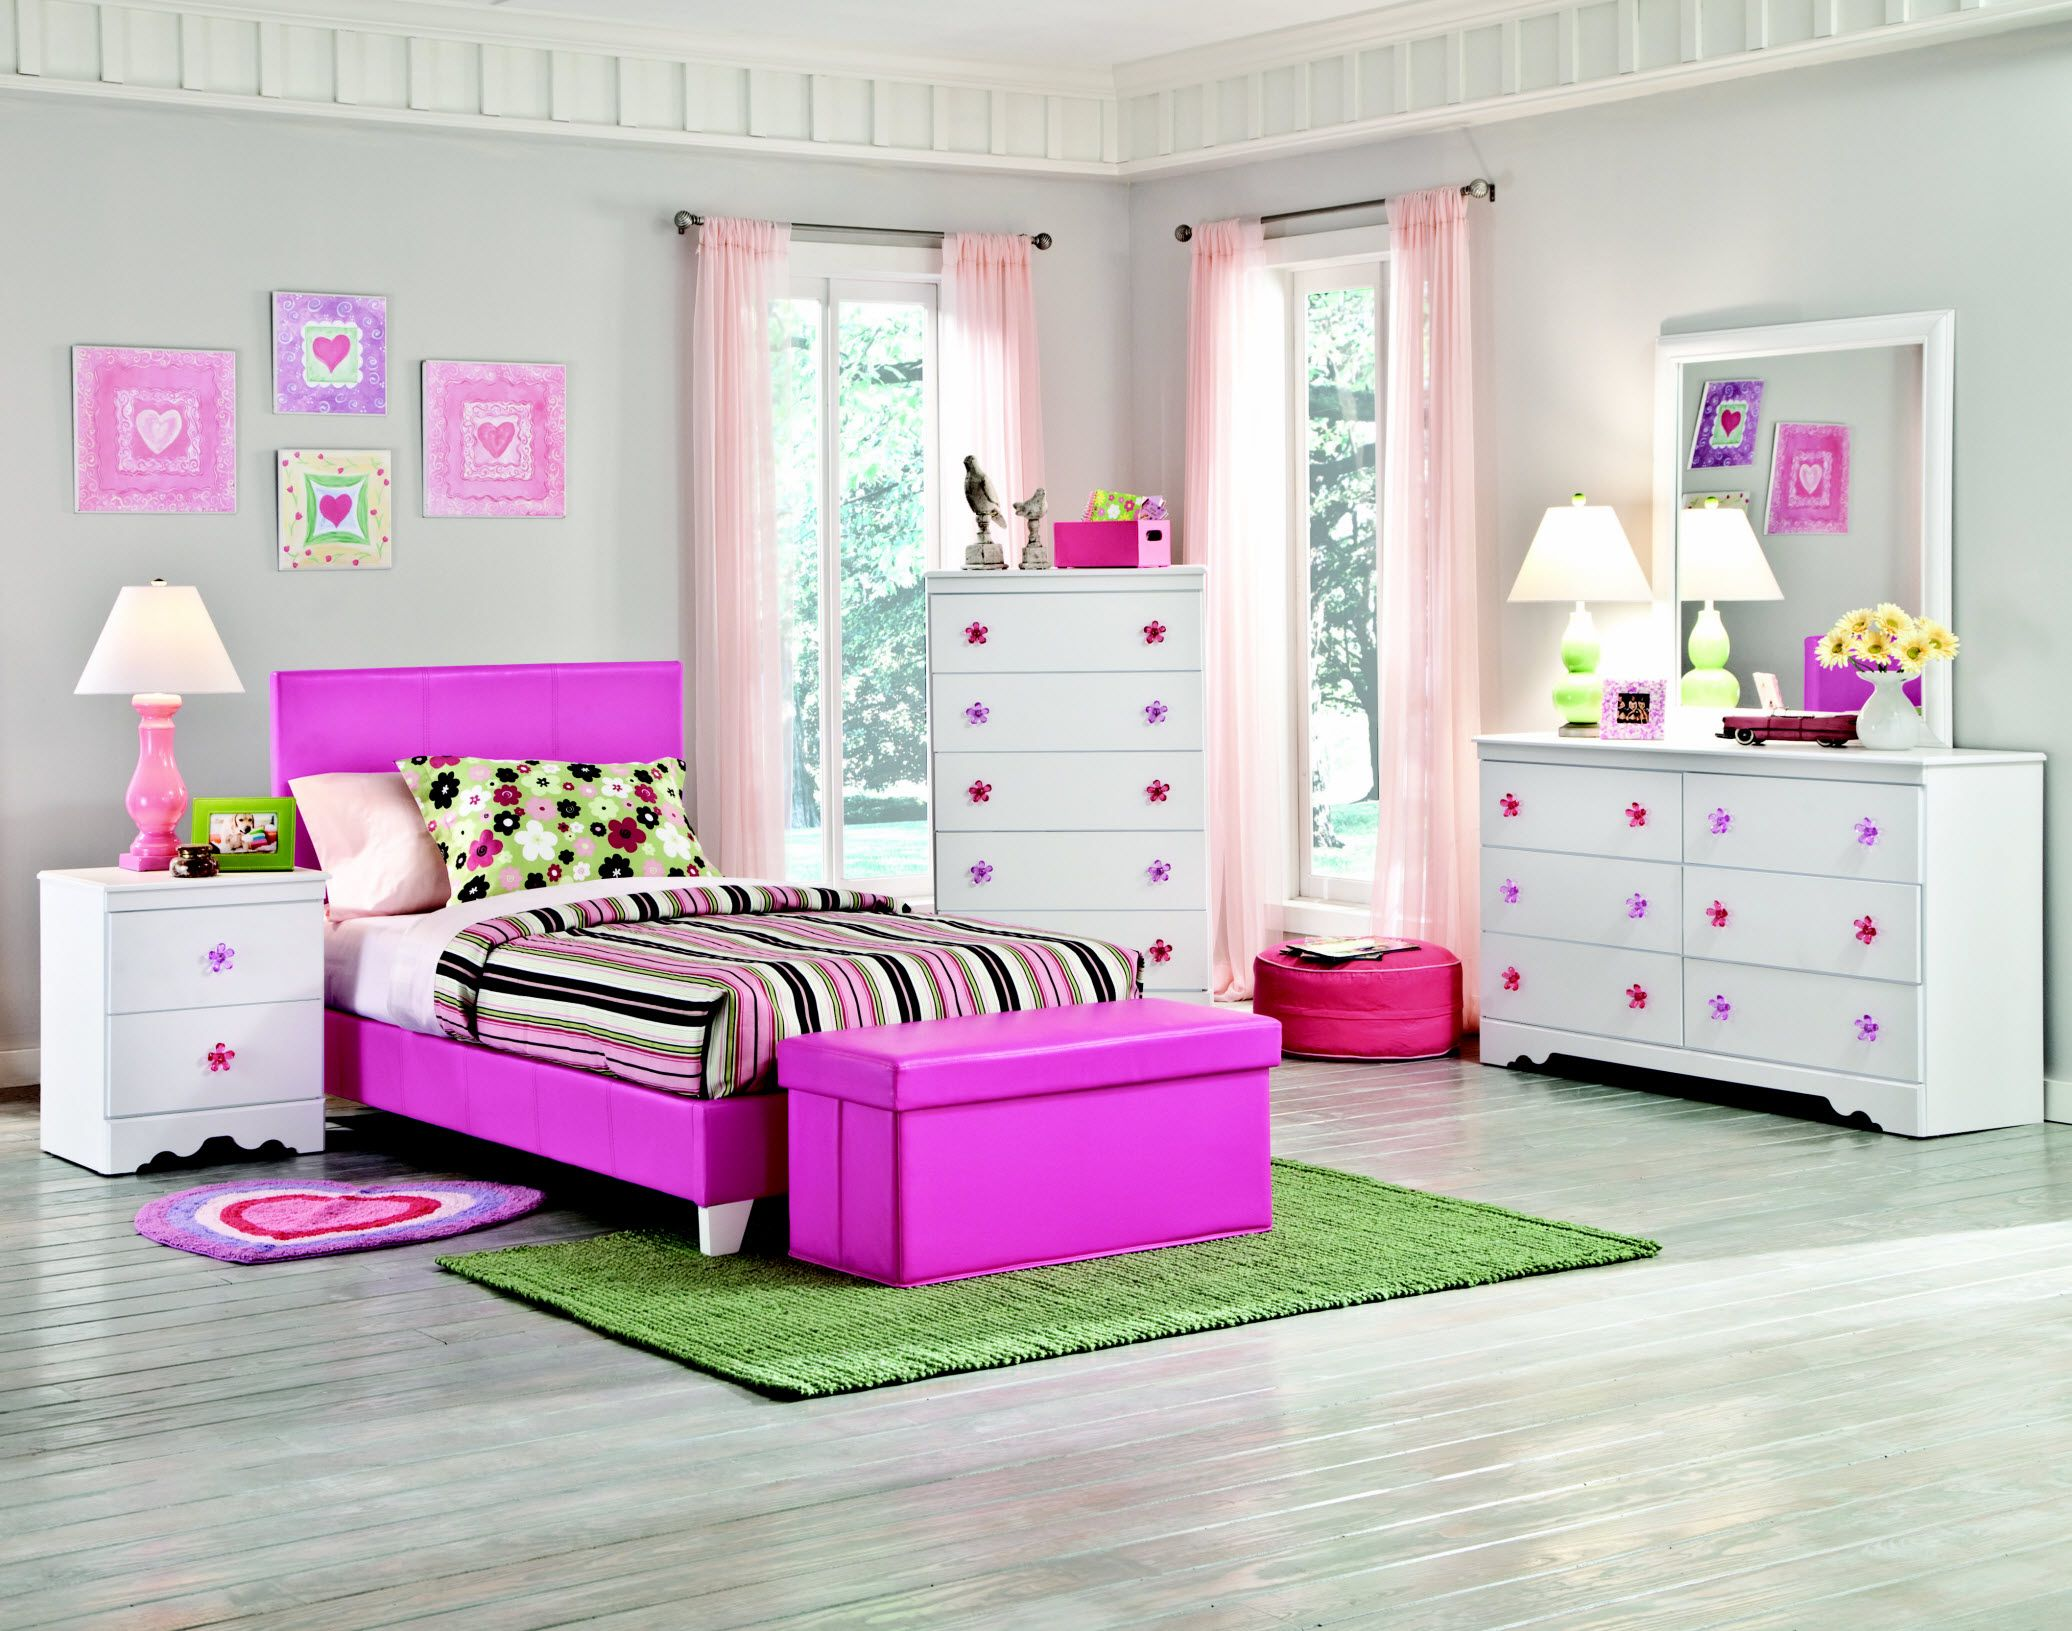 The Savannah White Bedroom Set   Pink or Purple Bycast Bed Available   furnitureurban com17 best Kid s Bedrooms images on Pinterest   Bedroom furniture  . Pink Bedroom Set. Home Design Ideas